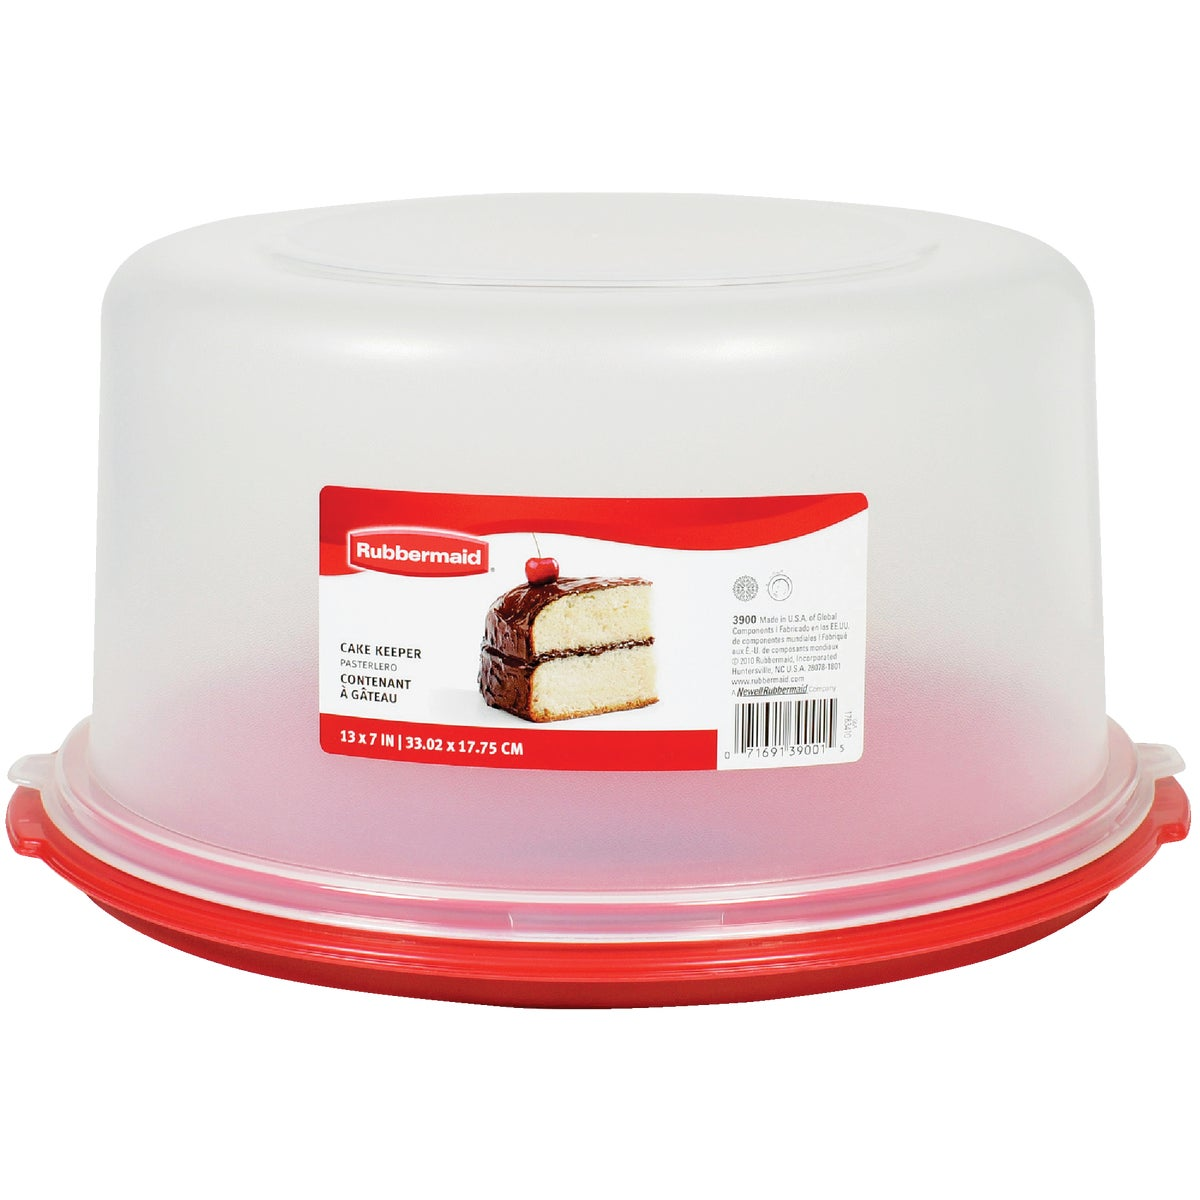 CAKE SERVING KEEPER TRAY - 1777191 by Rubbermaid Home